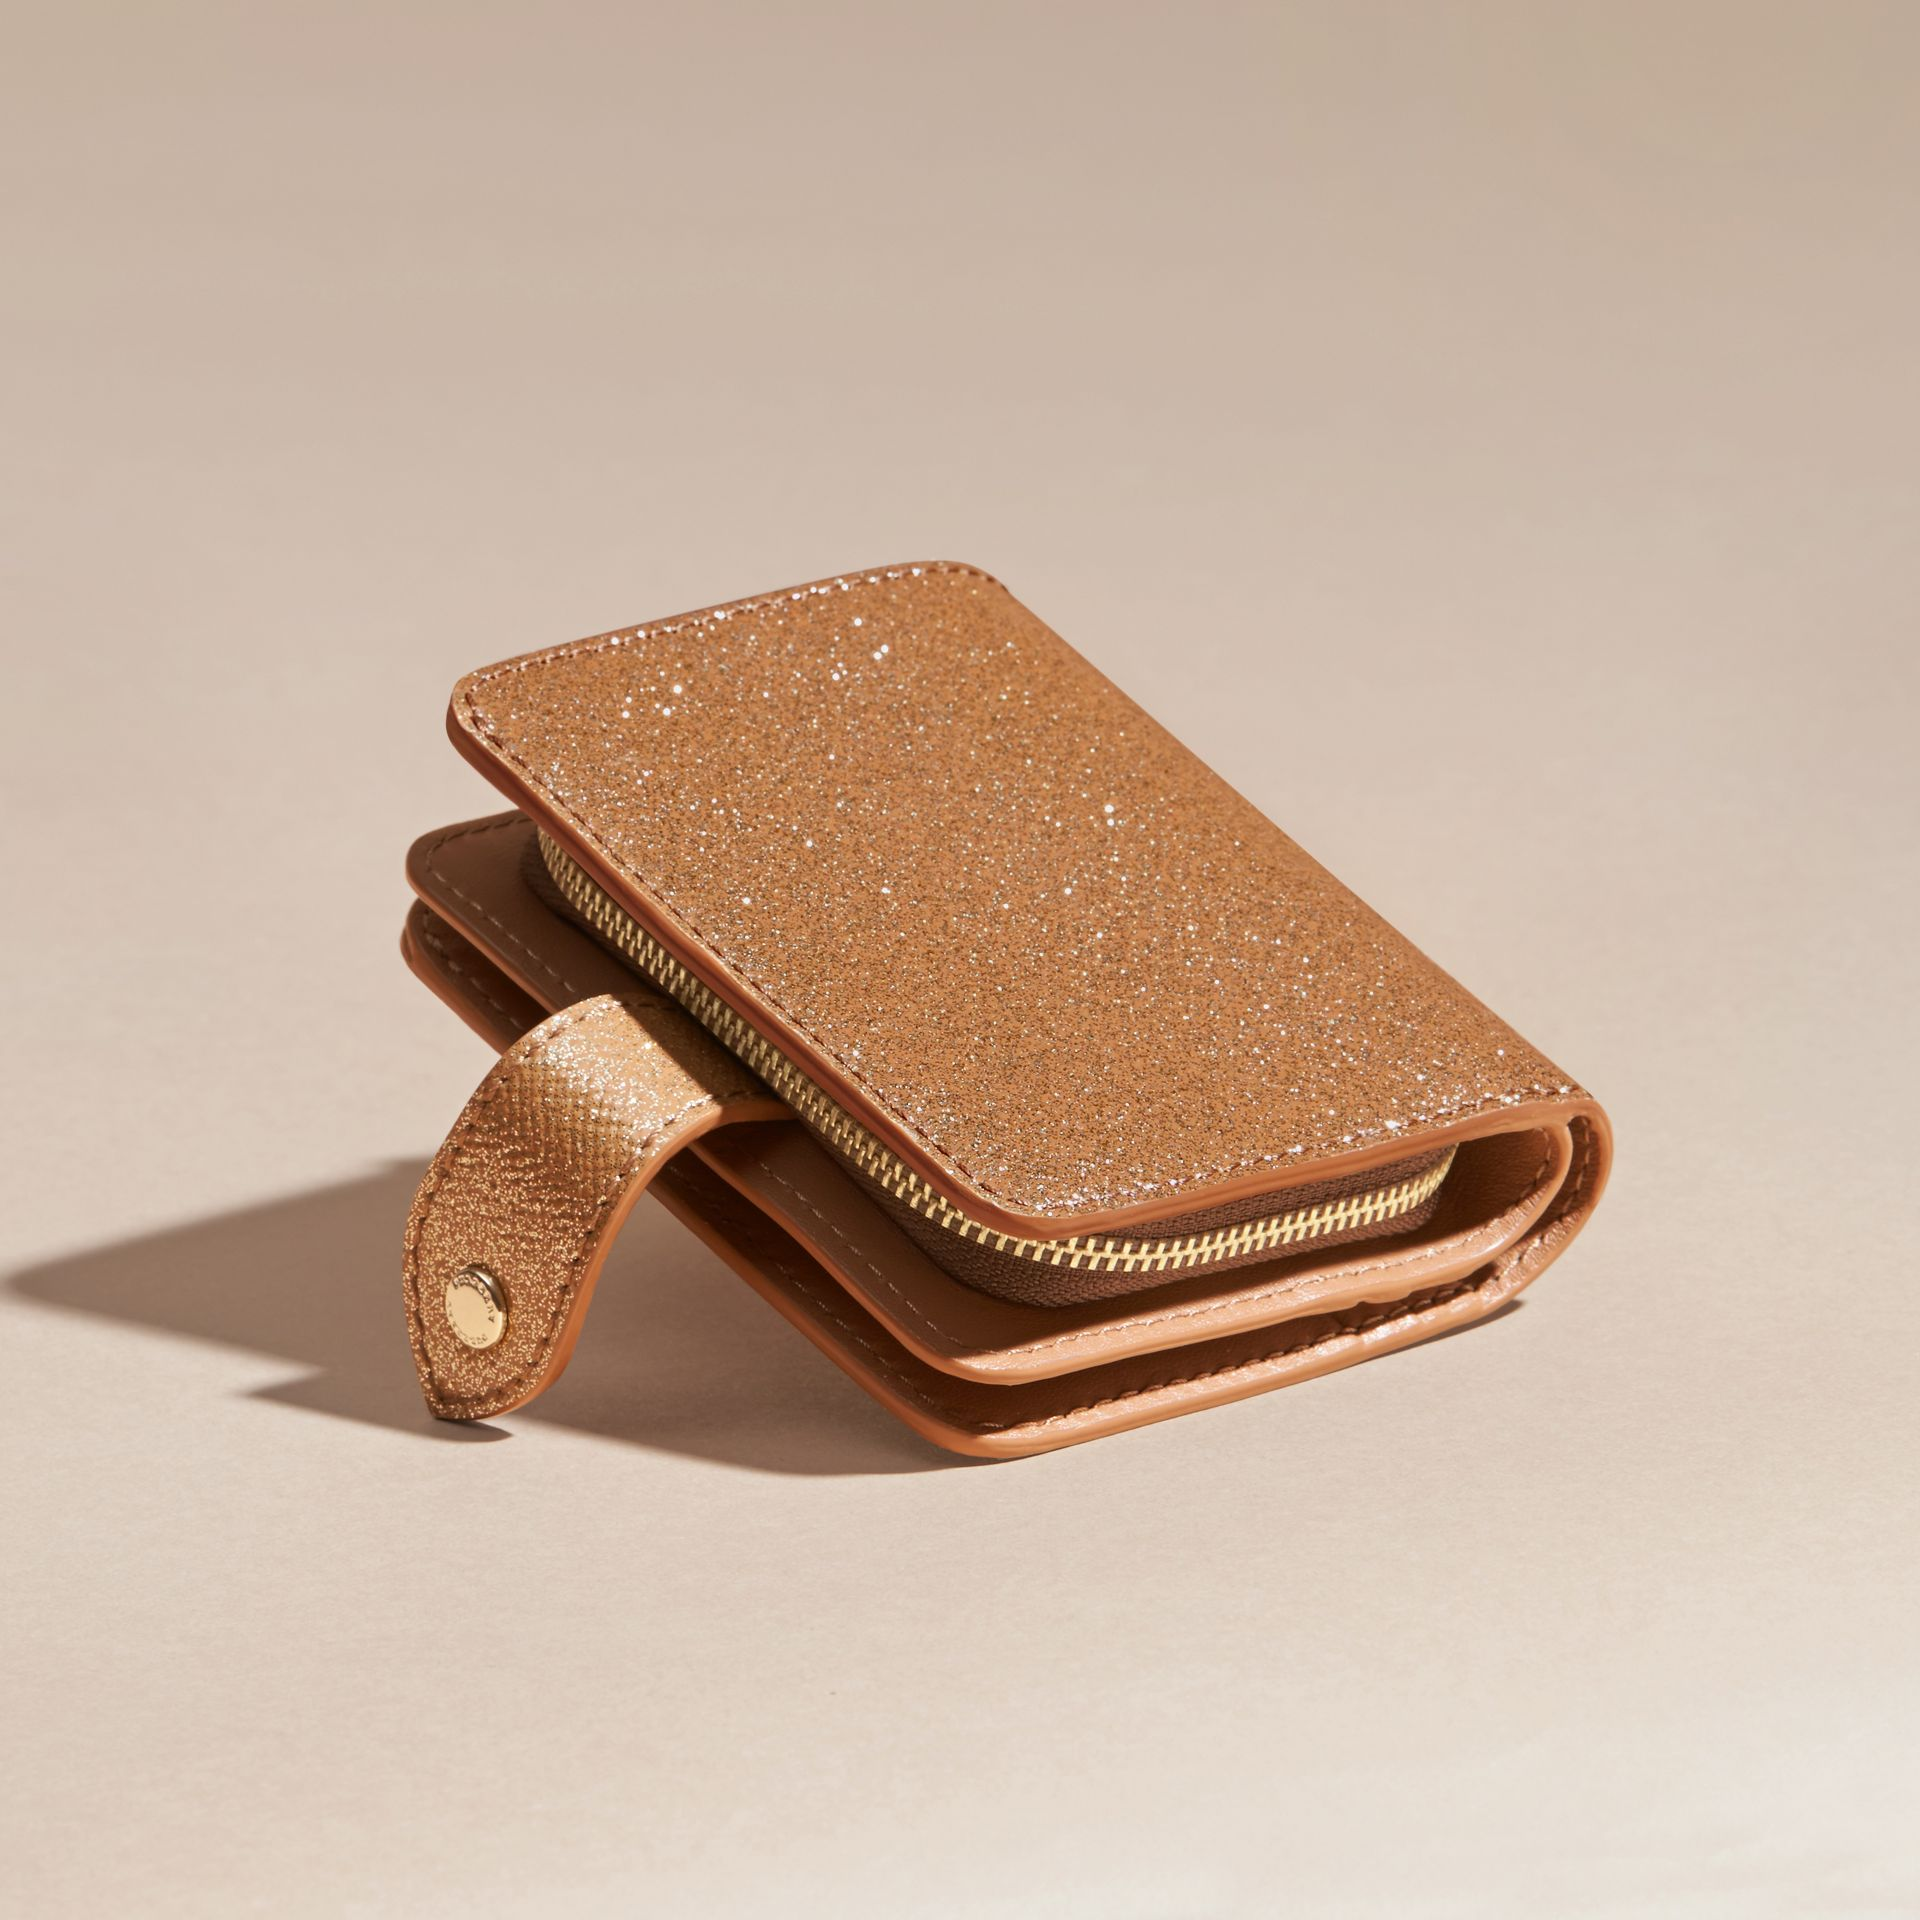 Glitter Patent London Leather Wallet in Camel / Gold - gallery image 4